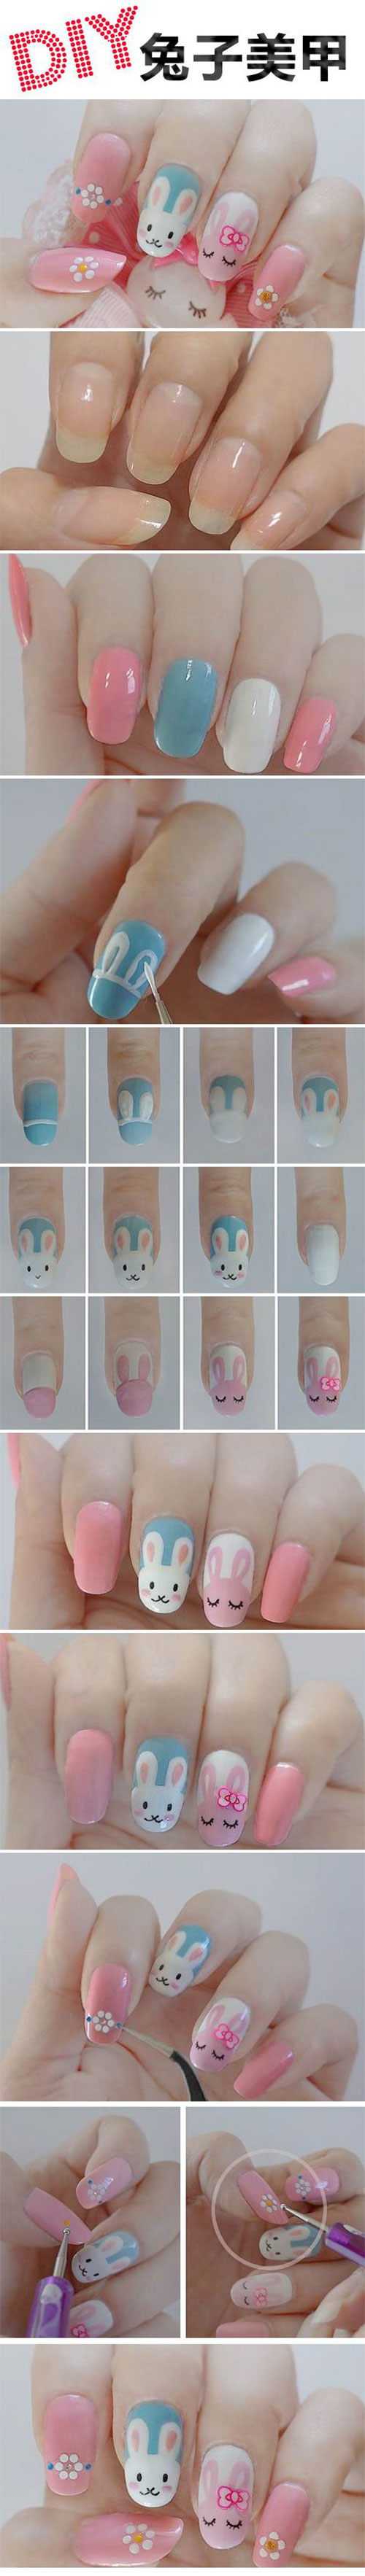 15-Easter-Nail-Art-Tutorials-For-Beginners-Learners-2018-15